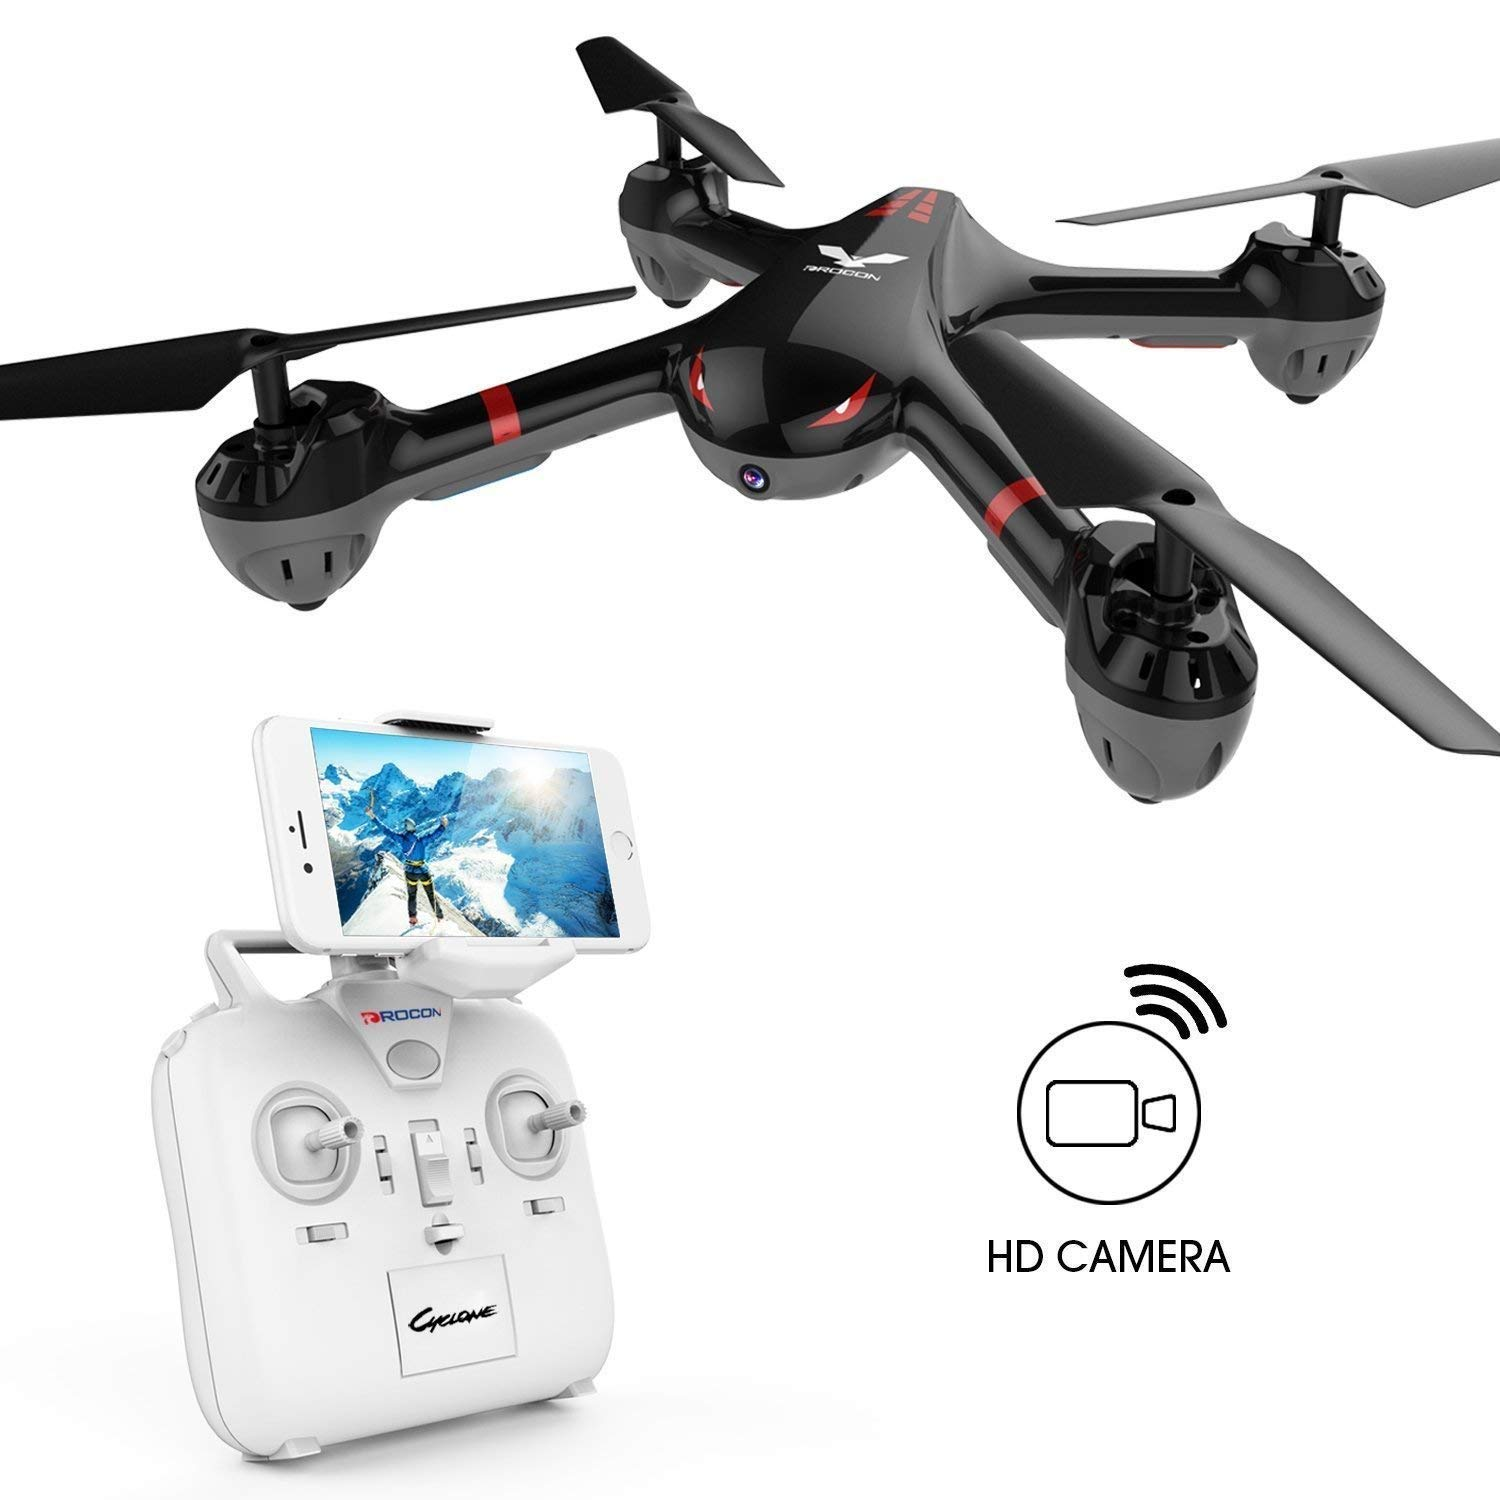 DROCON Drone for Beginners X708W Wi-Fi FPV Training Quadcopter with HD Camera Equipped with Headless Mode One Key Return Easy Operation by DROCON